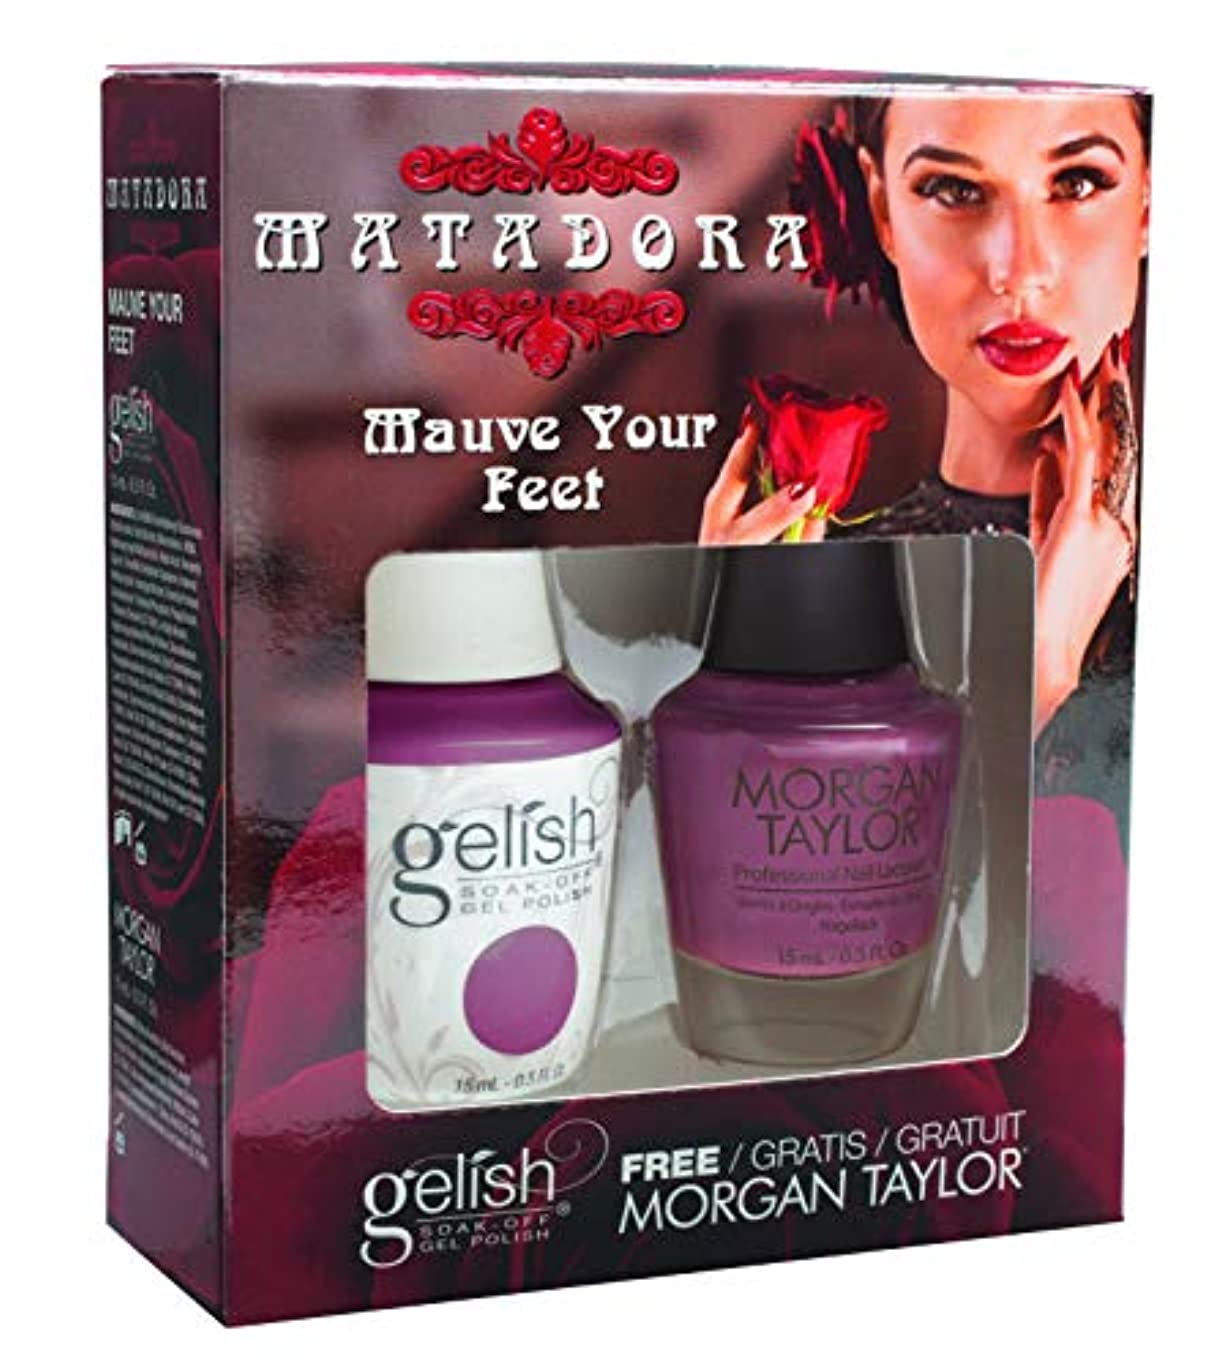 過剰出発まばたきHarmony Gelish Gel Polish - 2017 Matadora Set - Mauve Your Feet - 0.5oz / 15ml